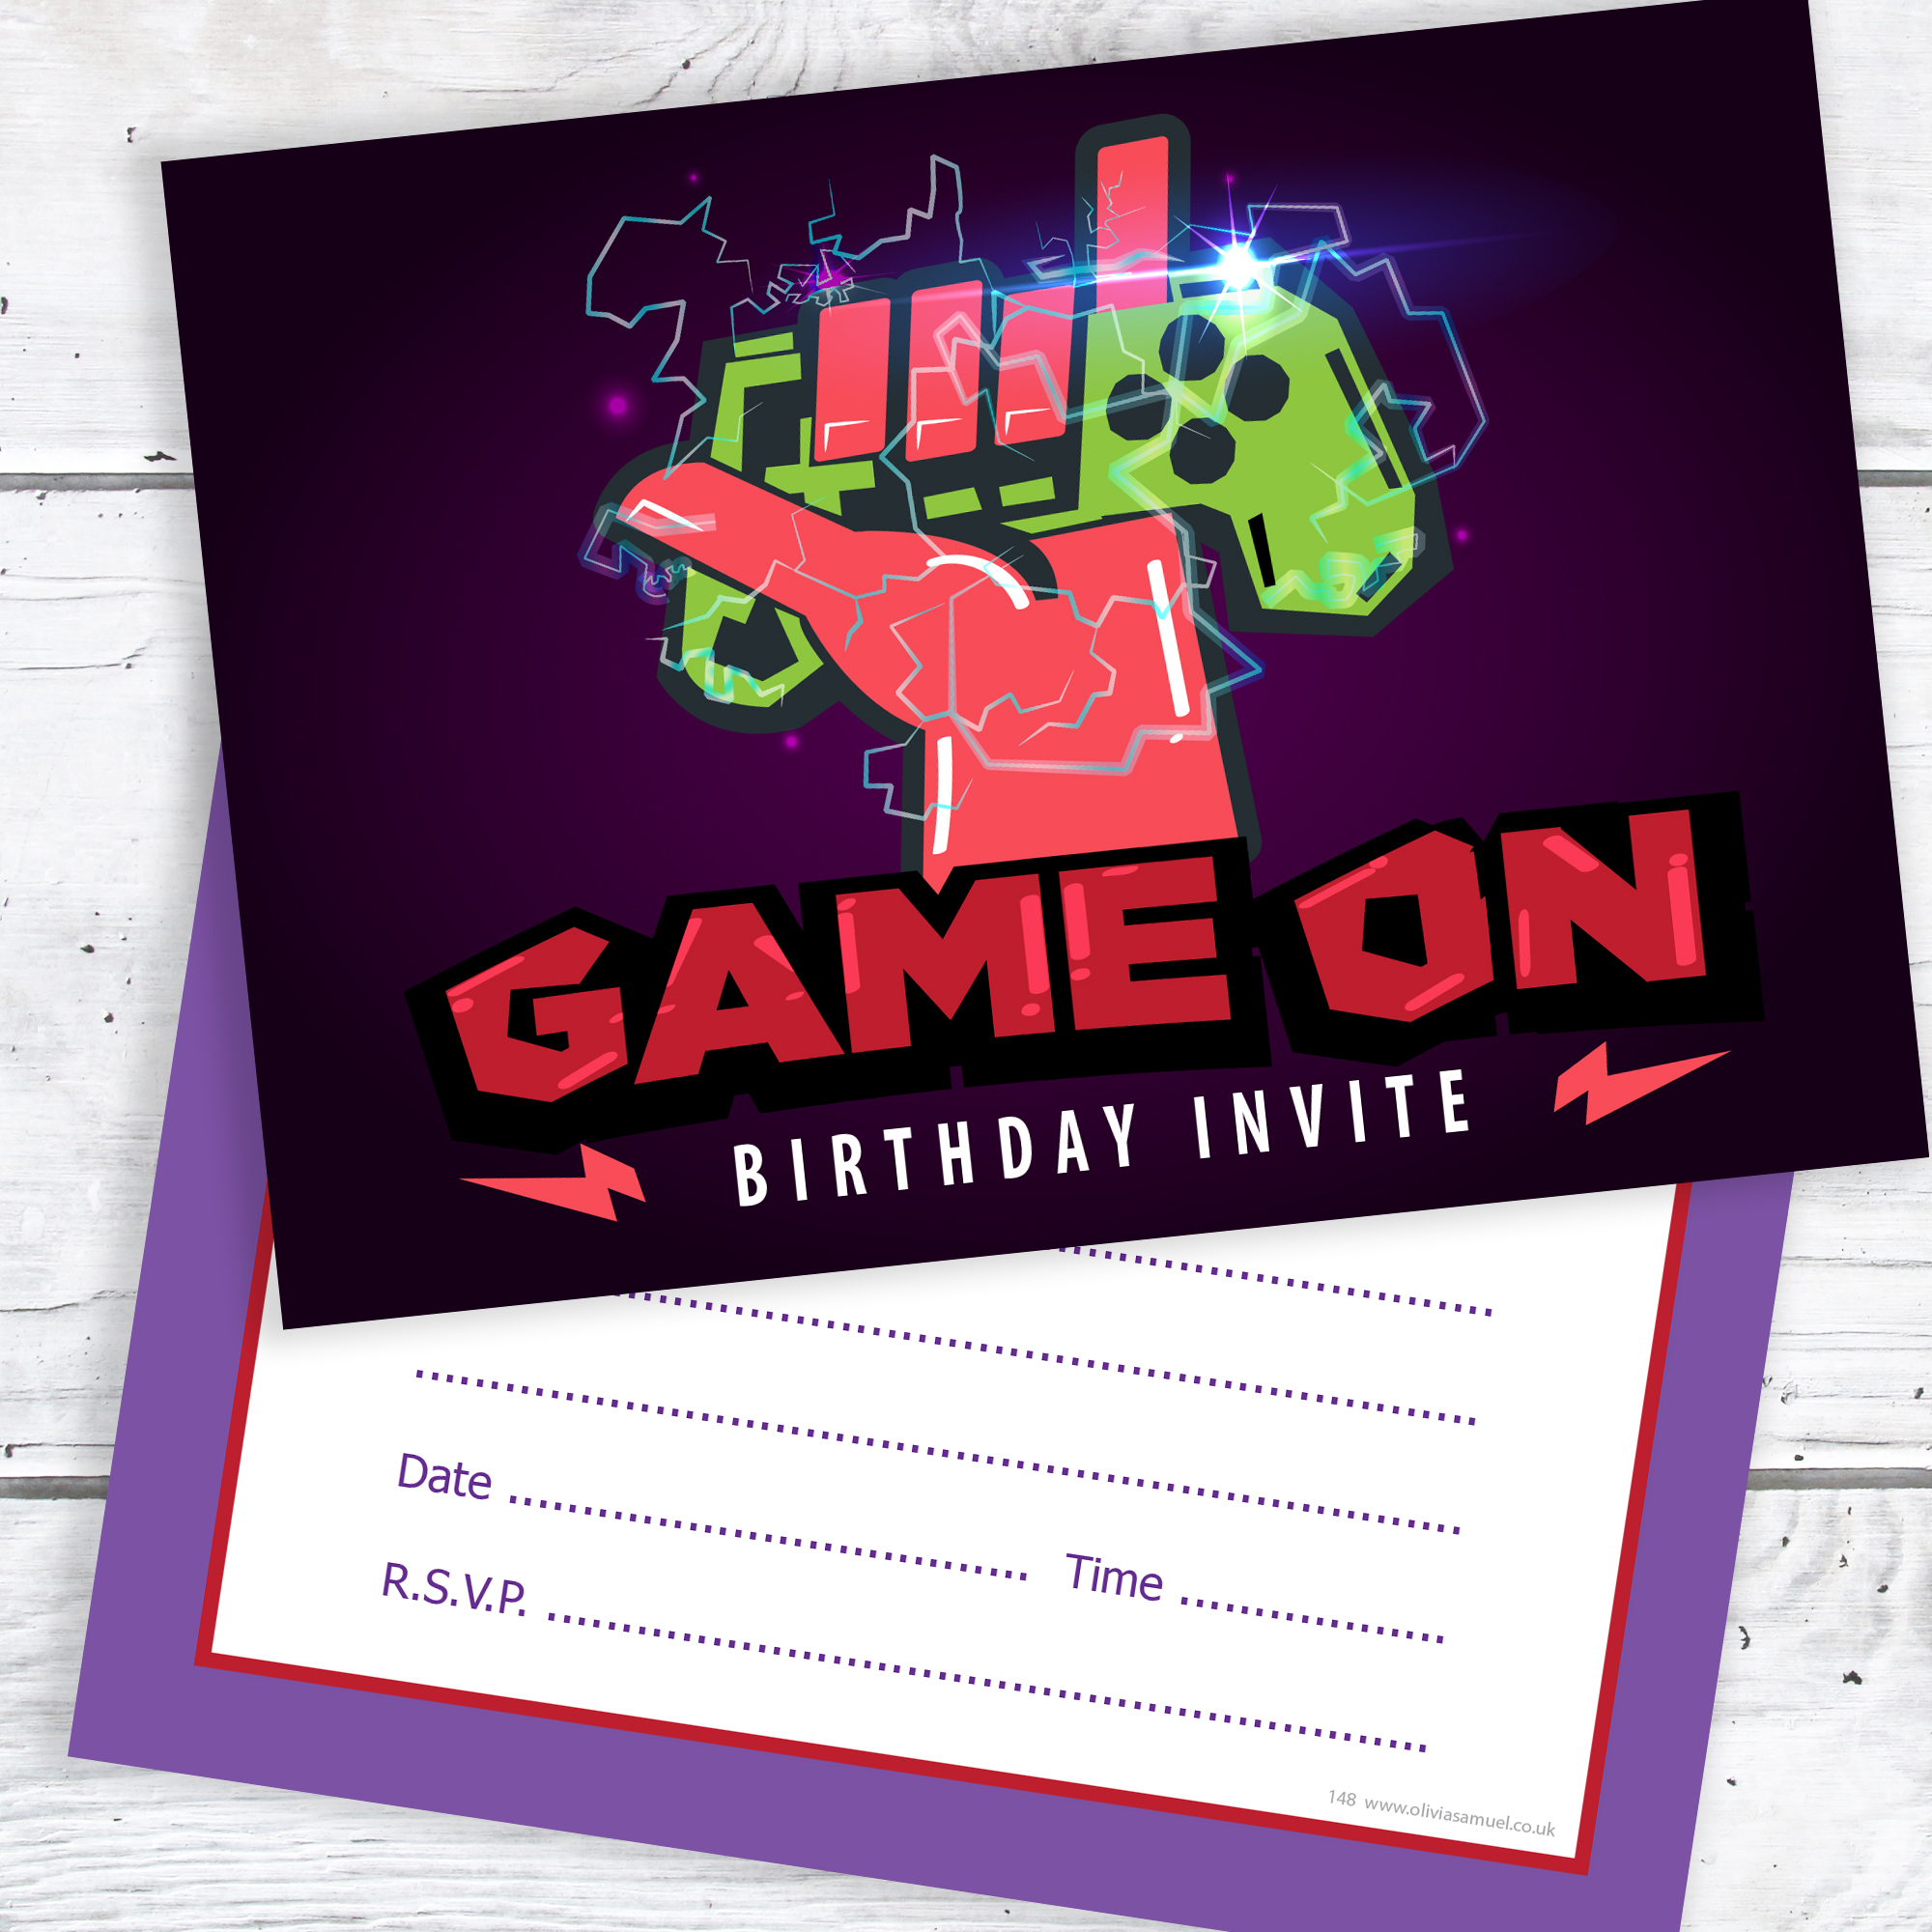 Game On Birthday Invitations – Gamer Party Invitations Ready to ...